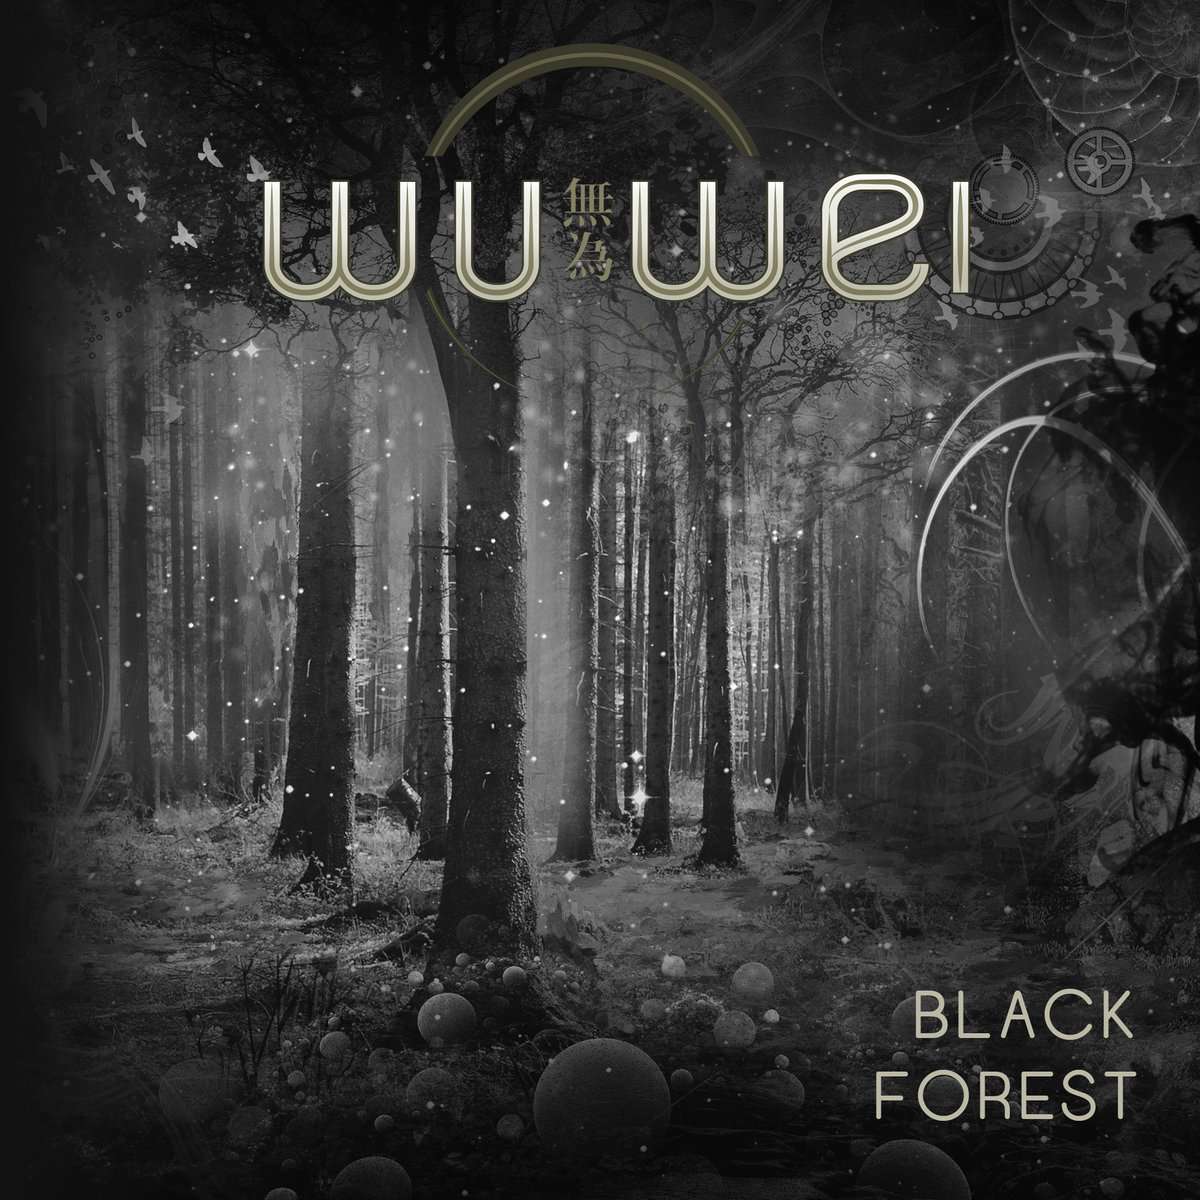 Wu Wei - Black Forest